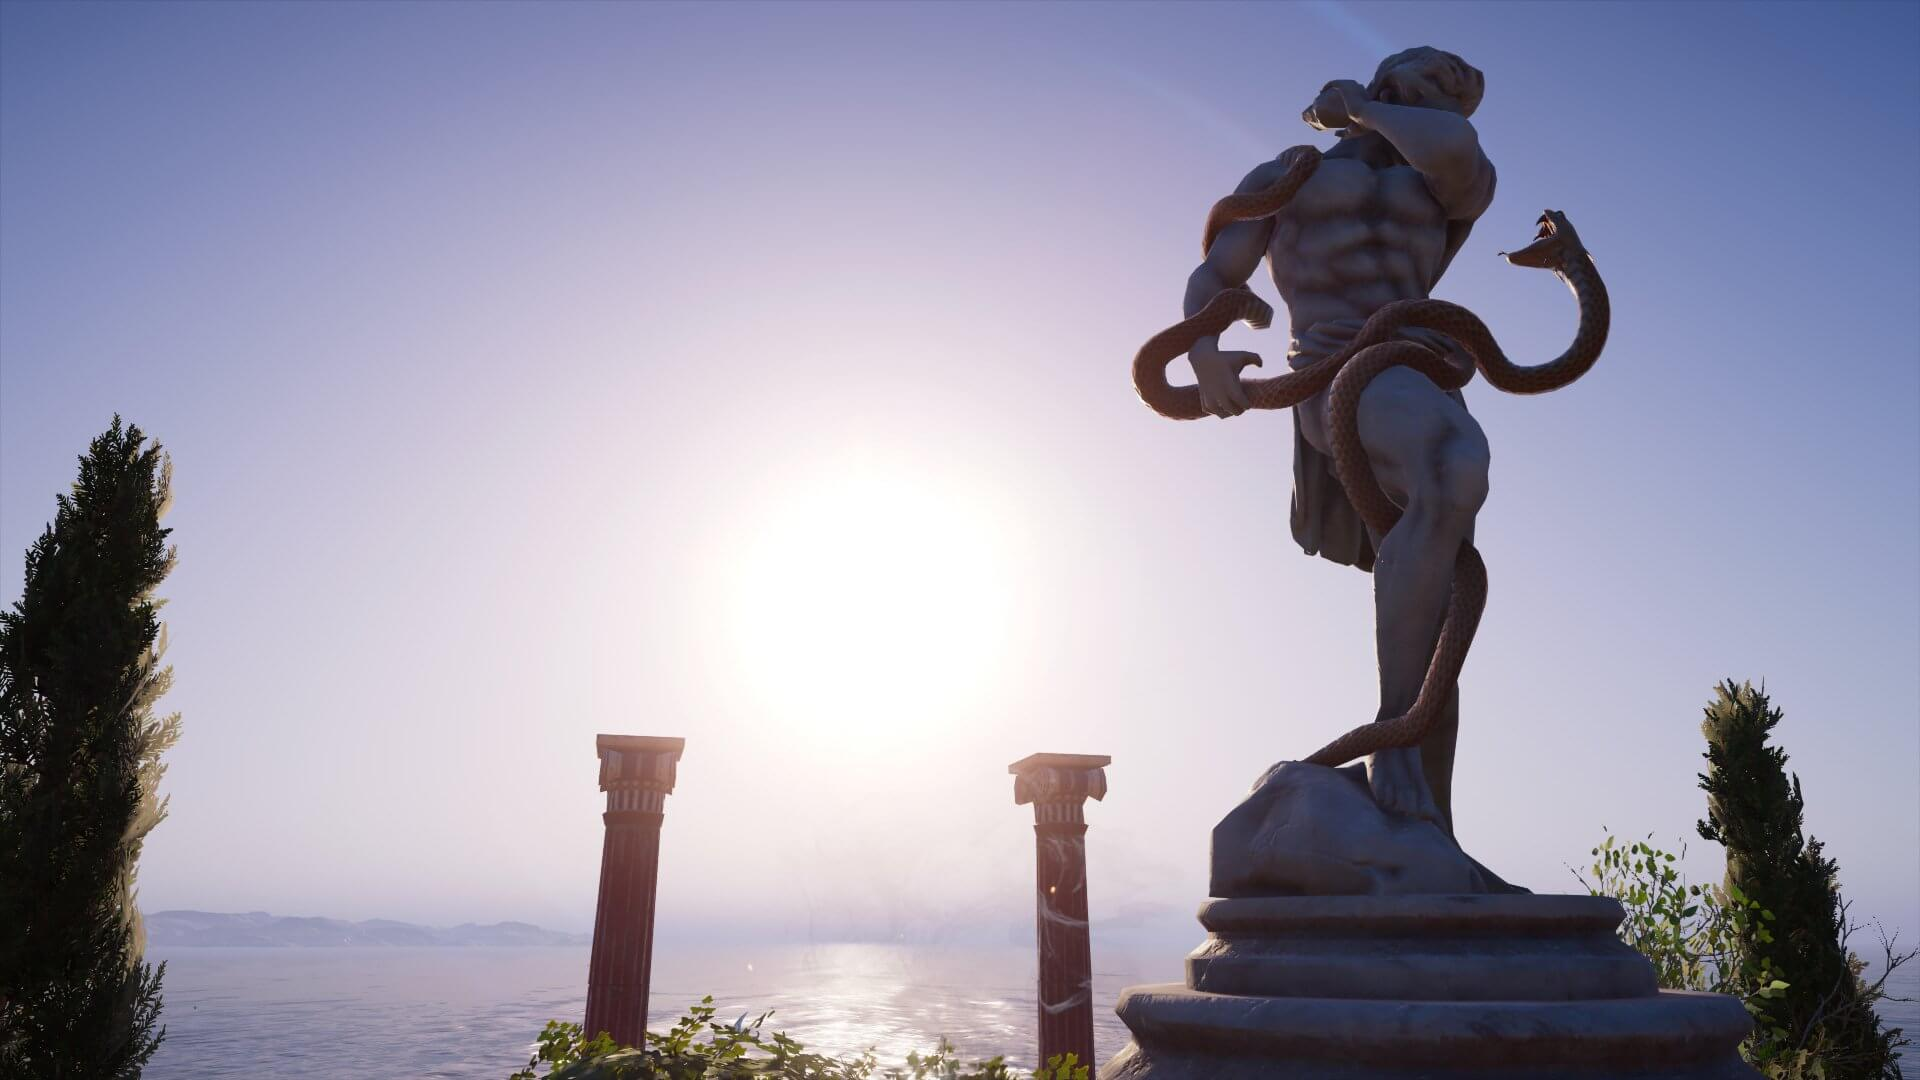 Assassins Creed® Odyssey  74 - Assassin's Creed Odyssey: confira o guia de dicas e truques do game